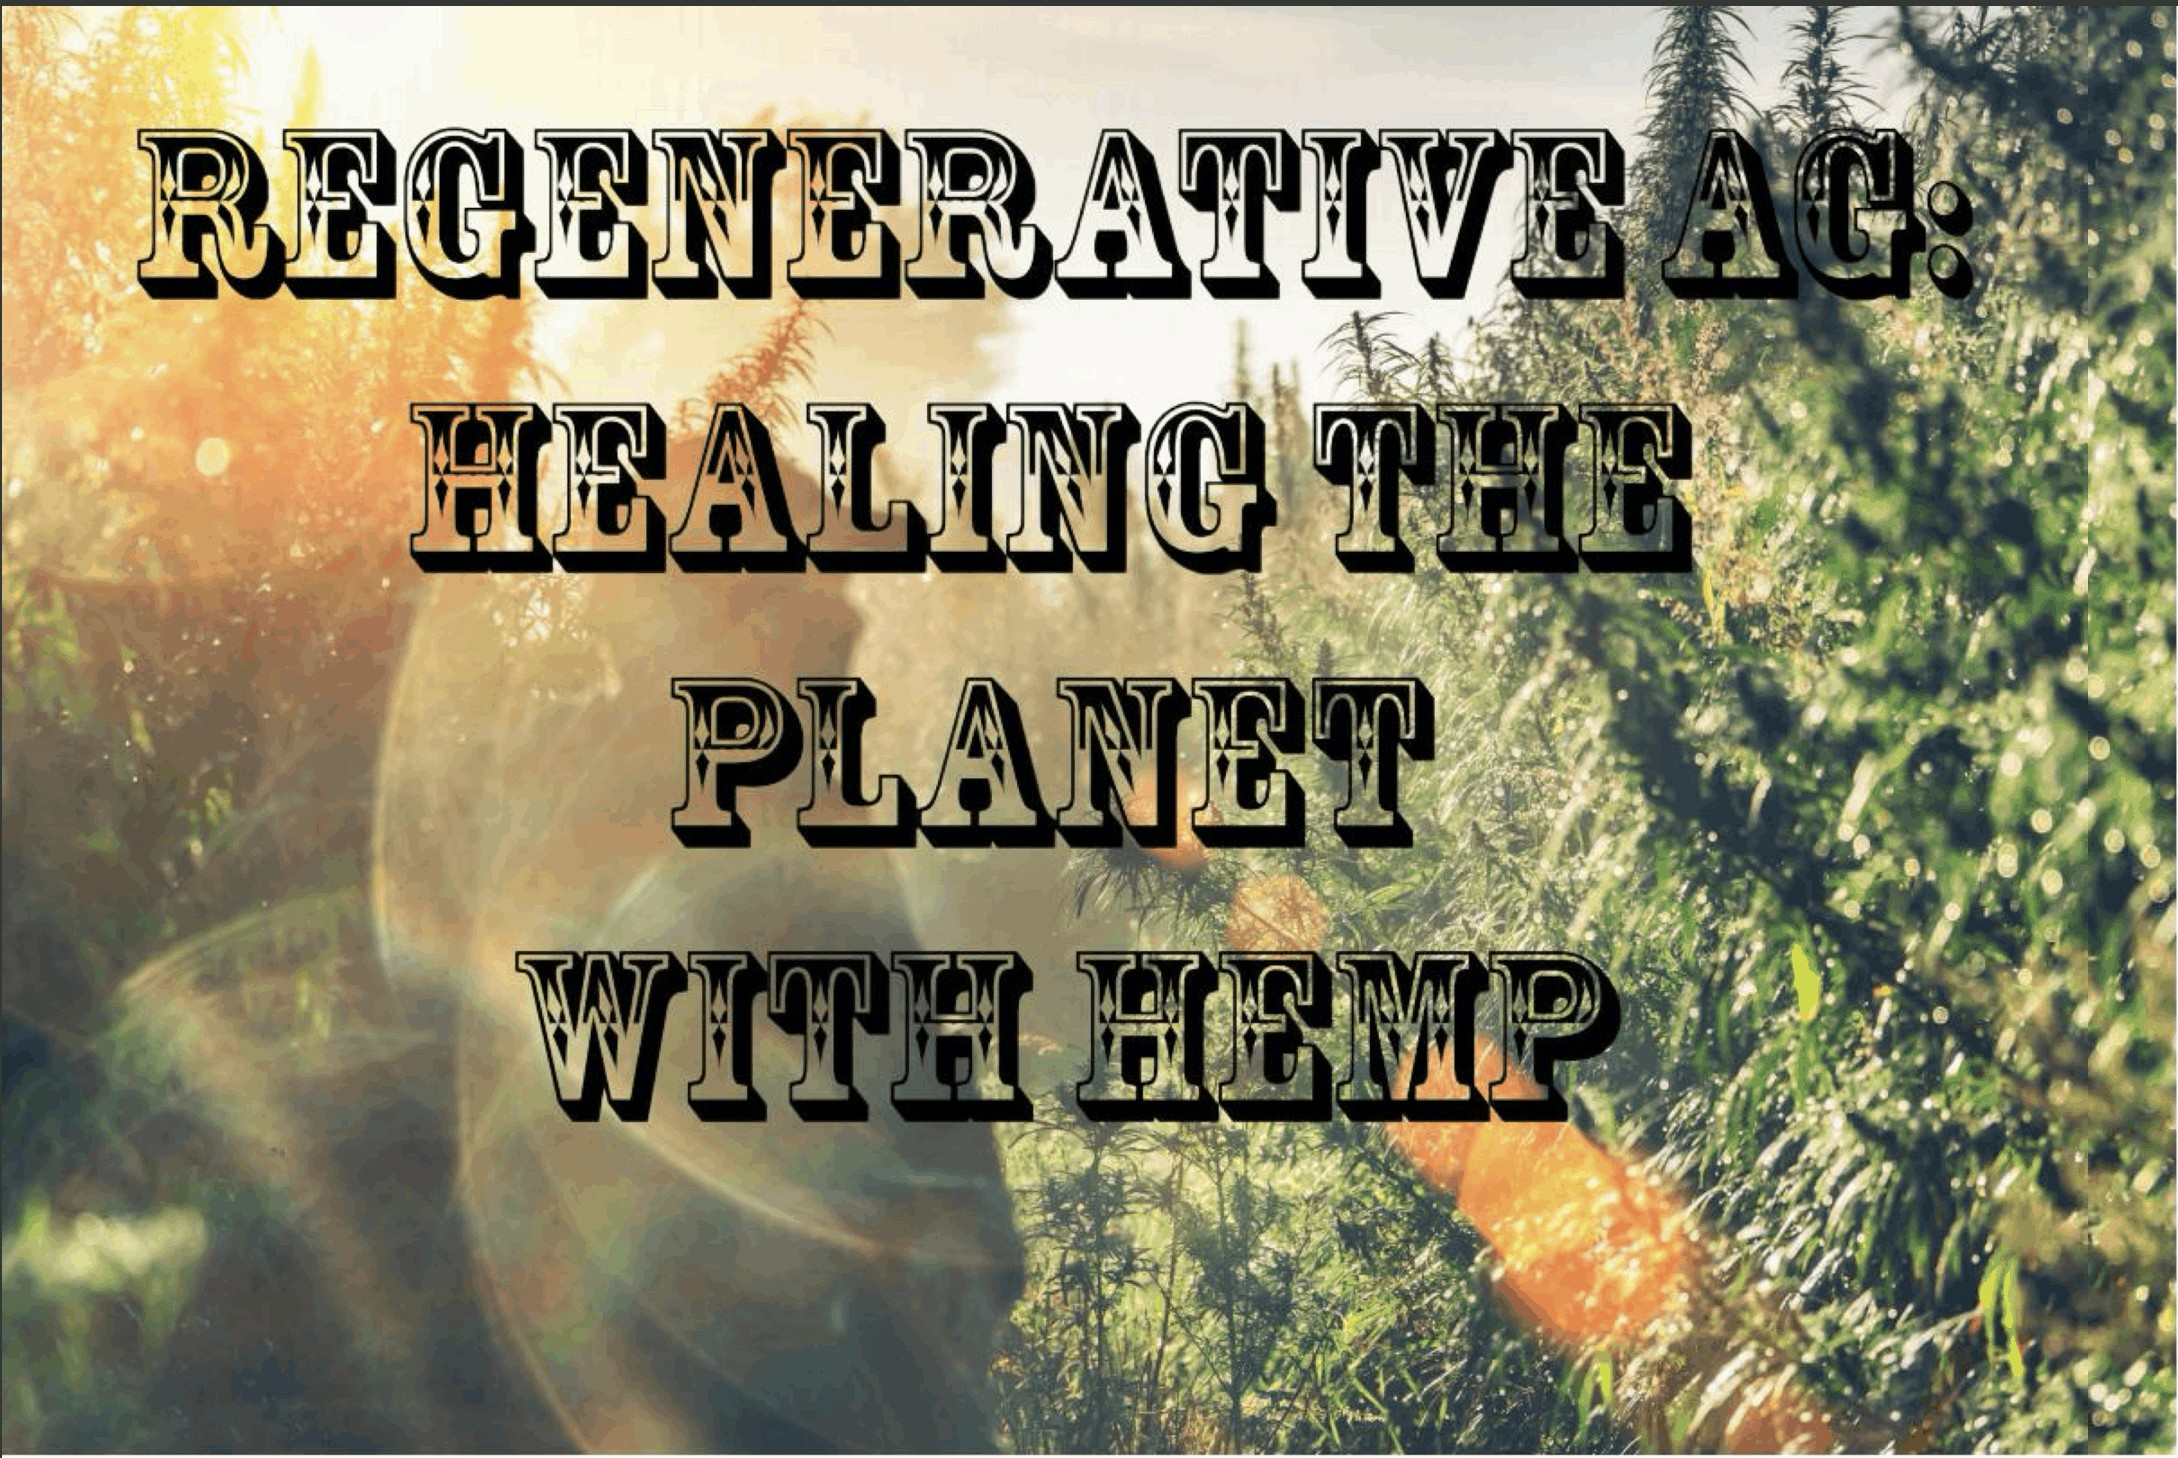 Regenerative Agriculture and the Power of Hemp to Repair Our Environment